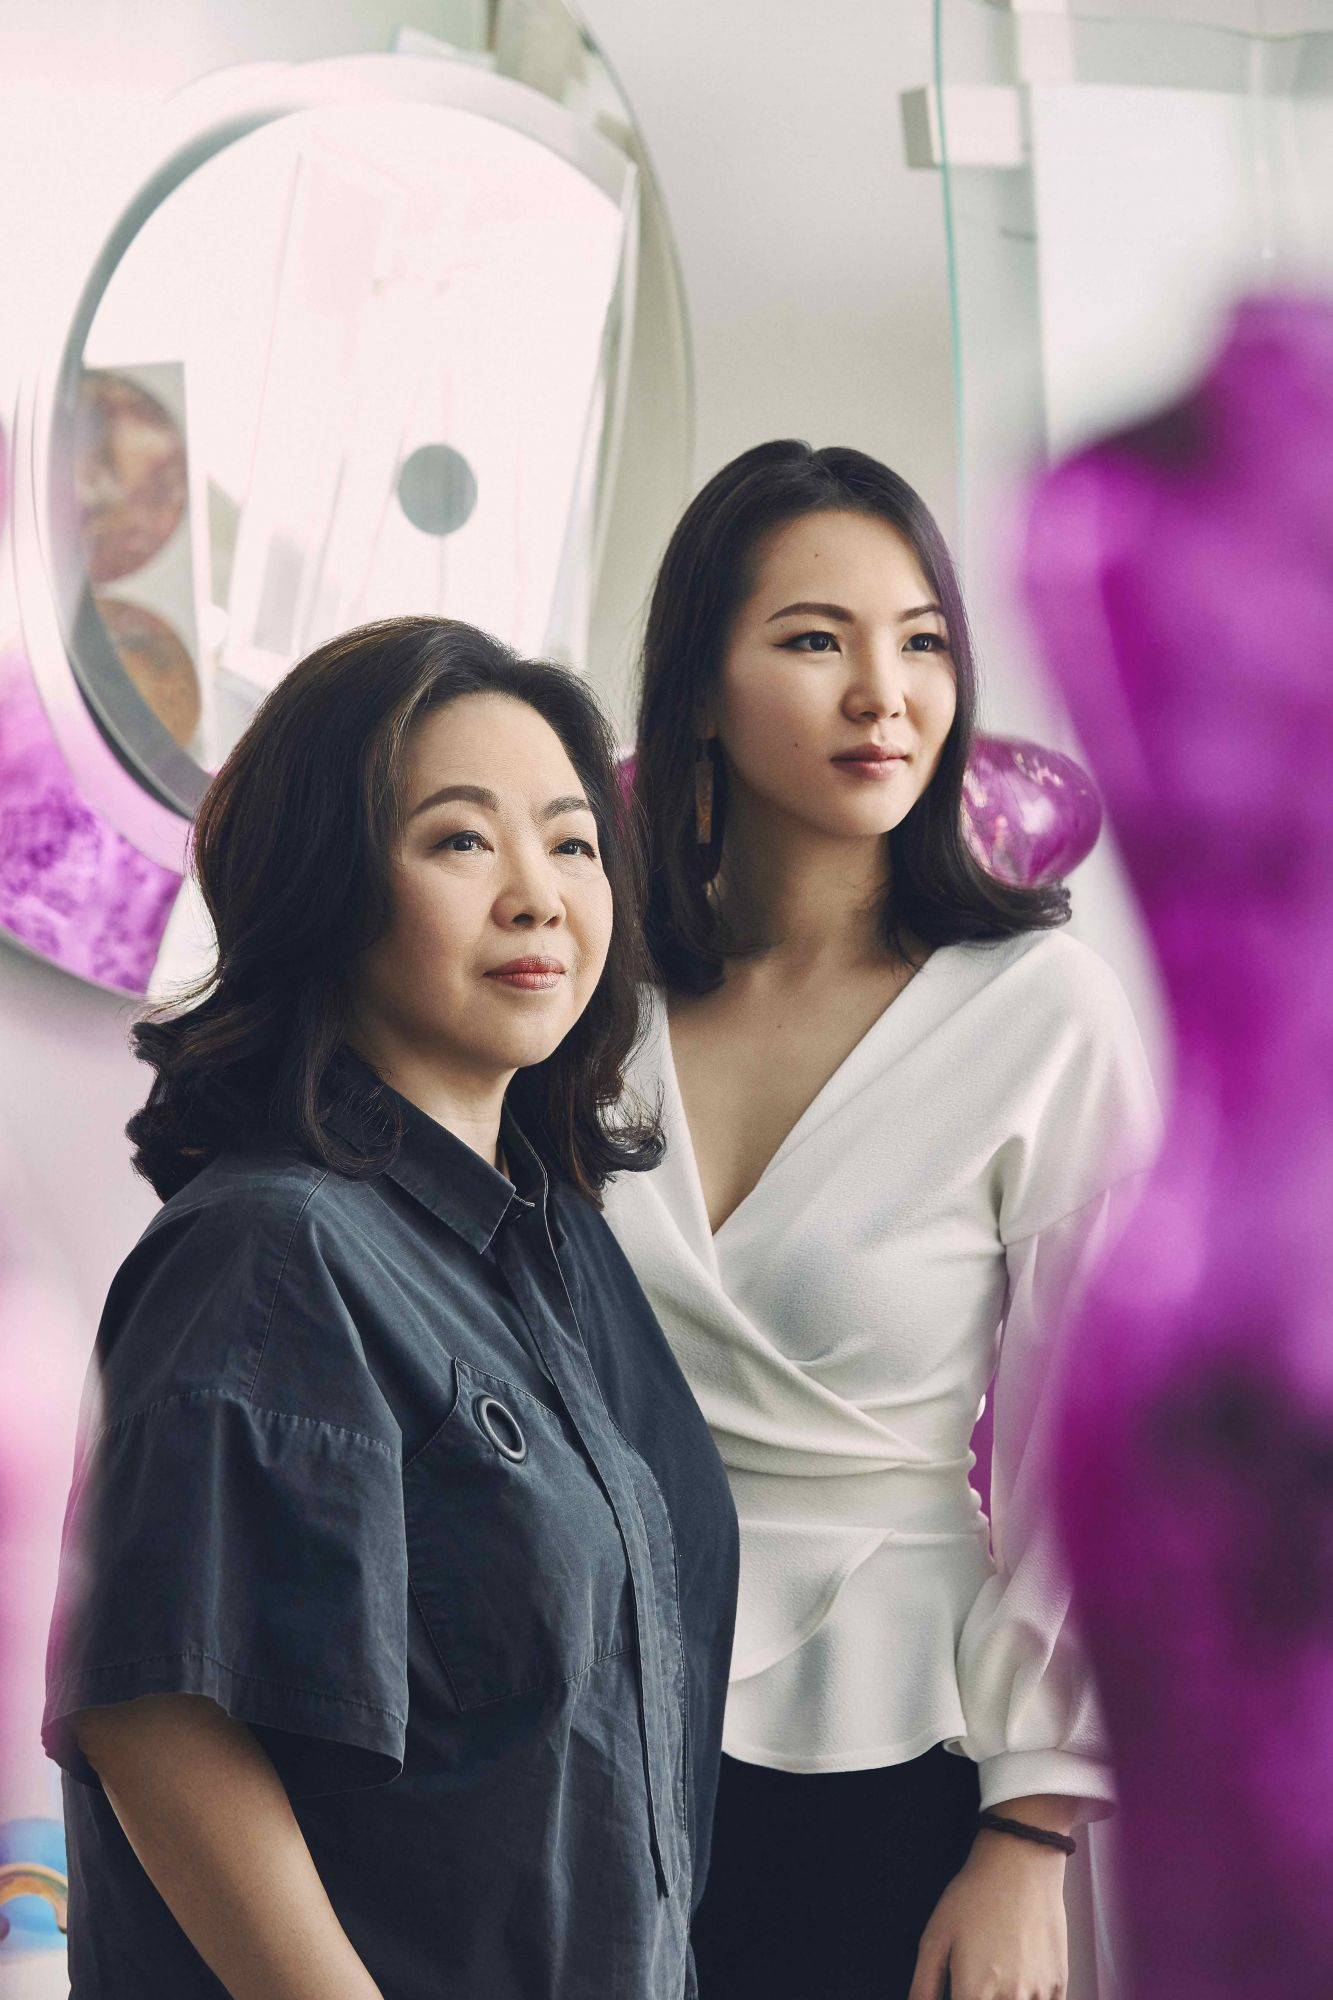 Family-Run Studio Synergraphic Design Creates Glass Art Proudly Made And Designed In Singapore